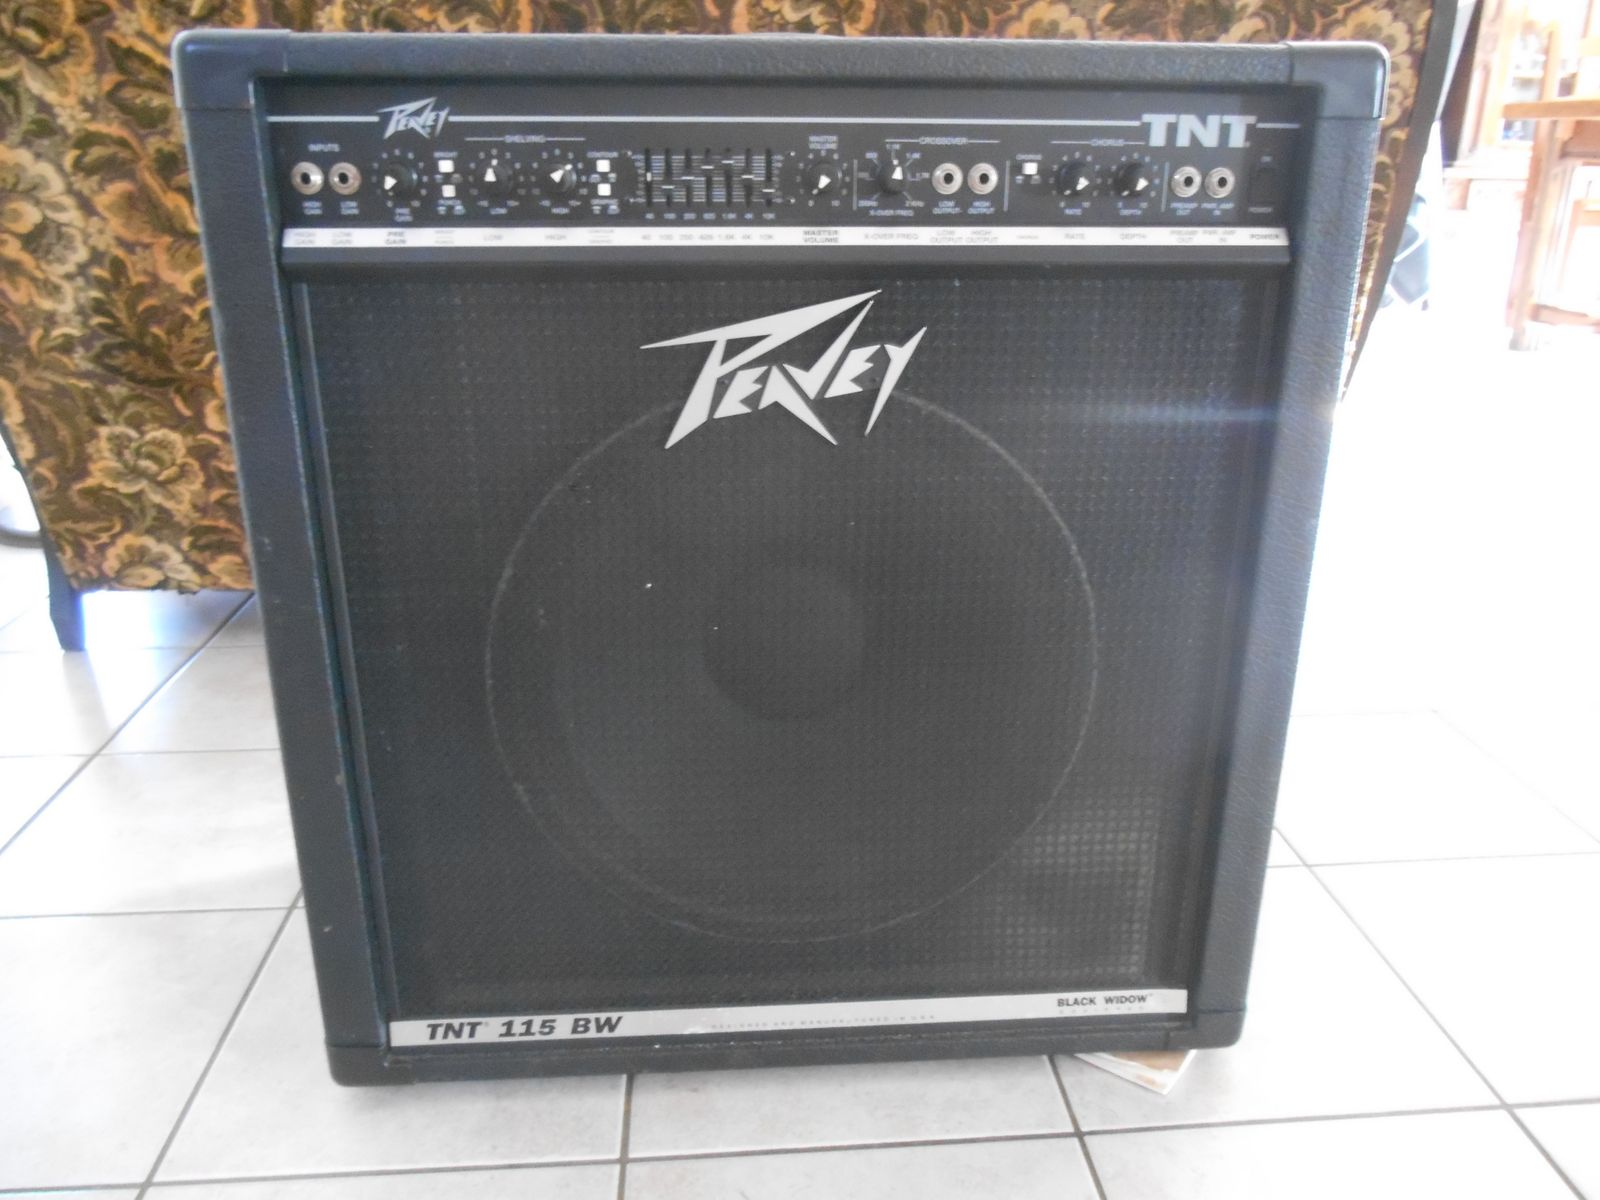 Peavey Tnt Bw in addition Od Overdrive Schematic also Peavey Pa Pre additionally Peaveys Solo together with Peavey Speakers. on peavey rage 158 schematic